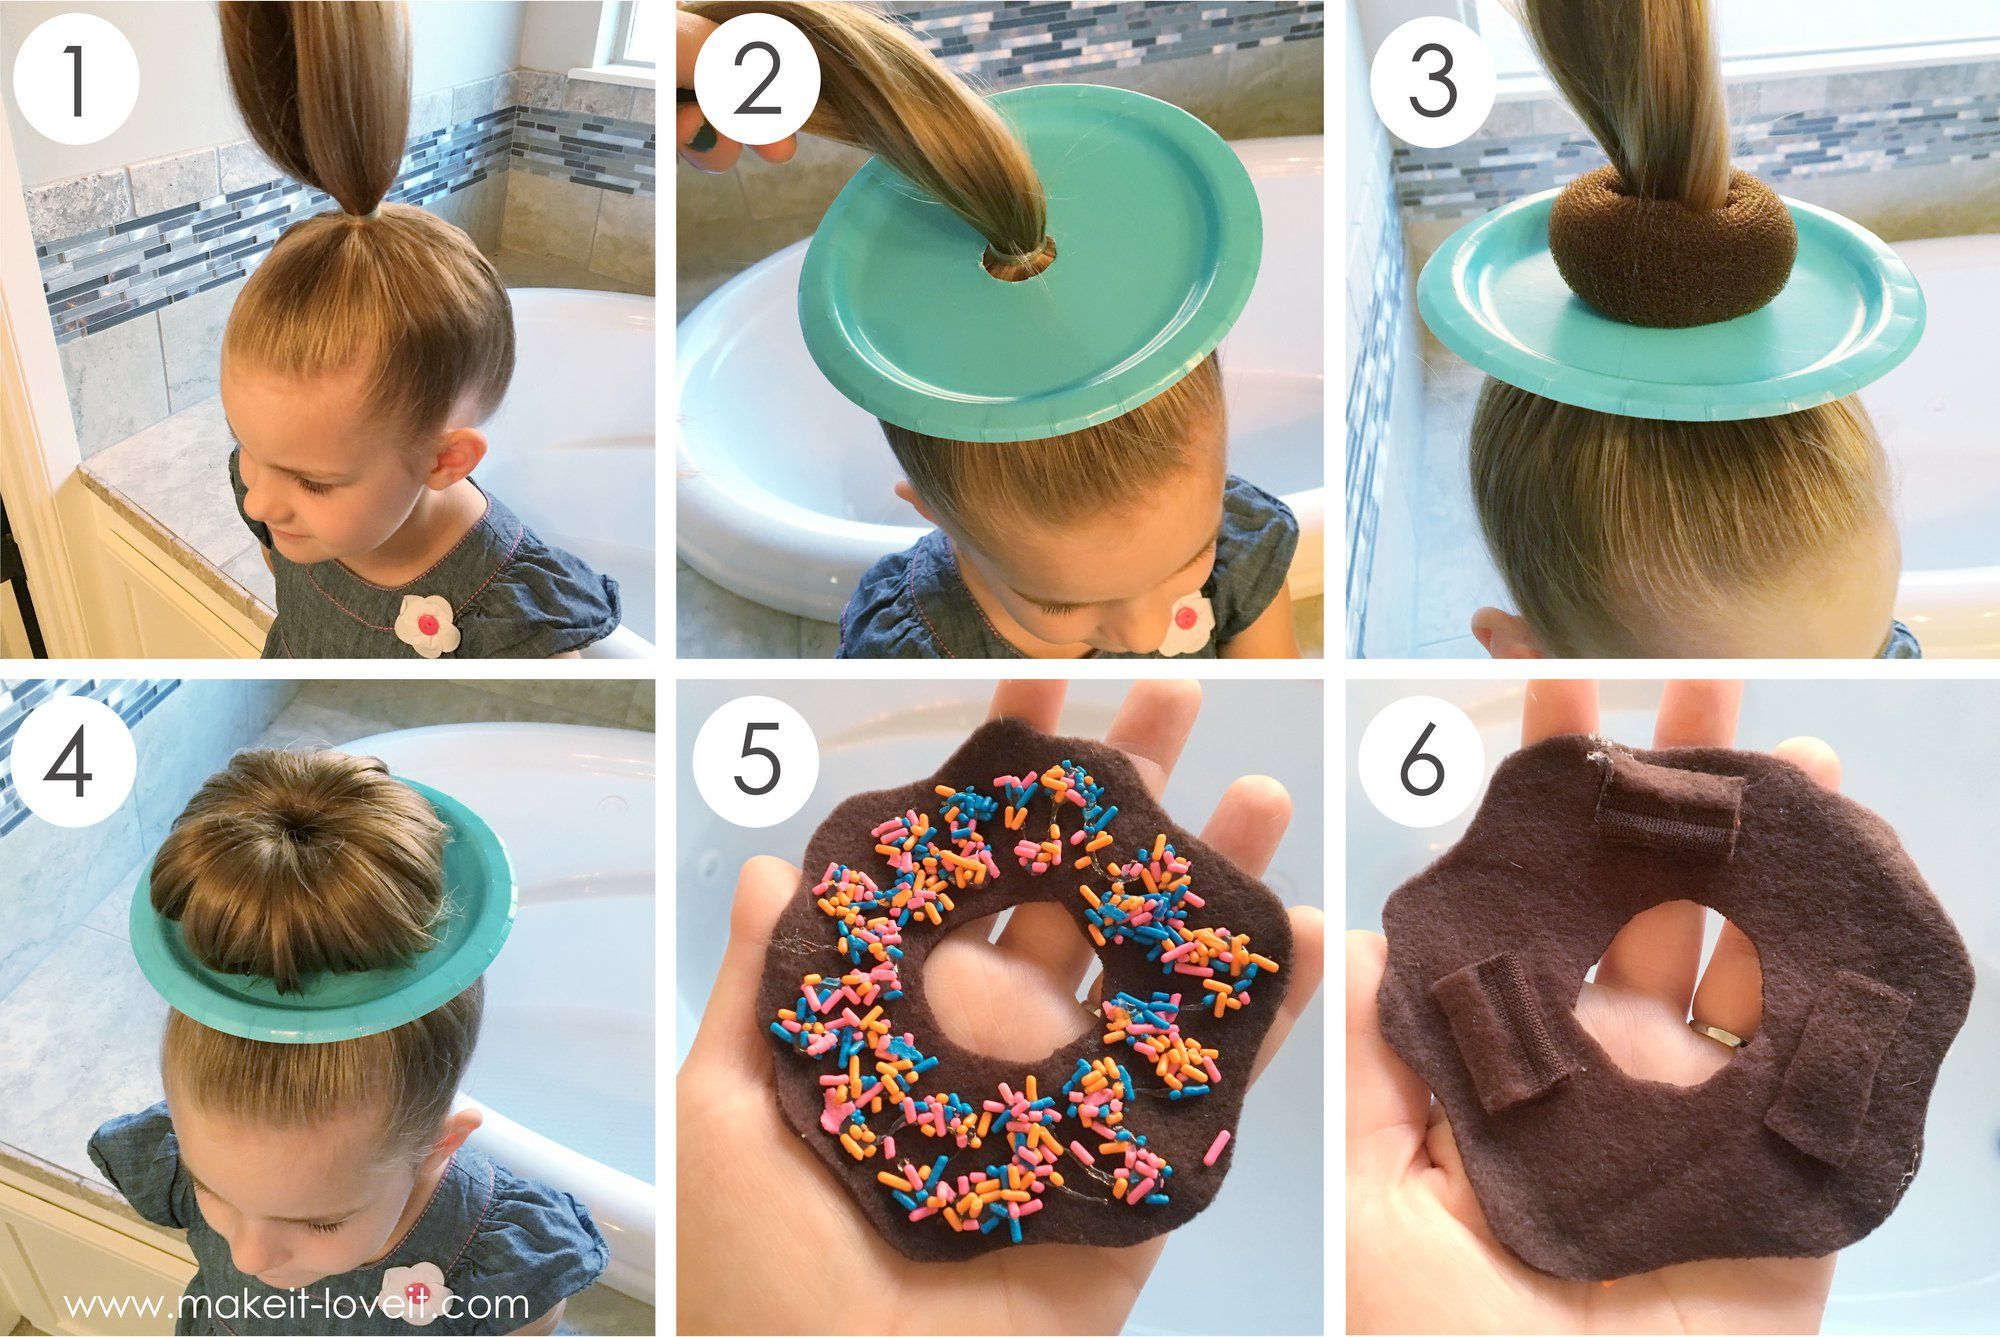 25 CLEVER IDEAS for 'Wacky Hair Day' at SCHOOL!! (…including Chloe's wacky hair!) #crazyhatdayideas